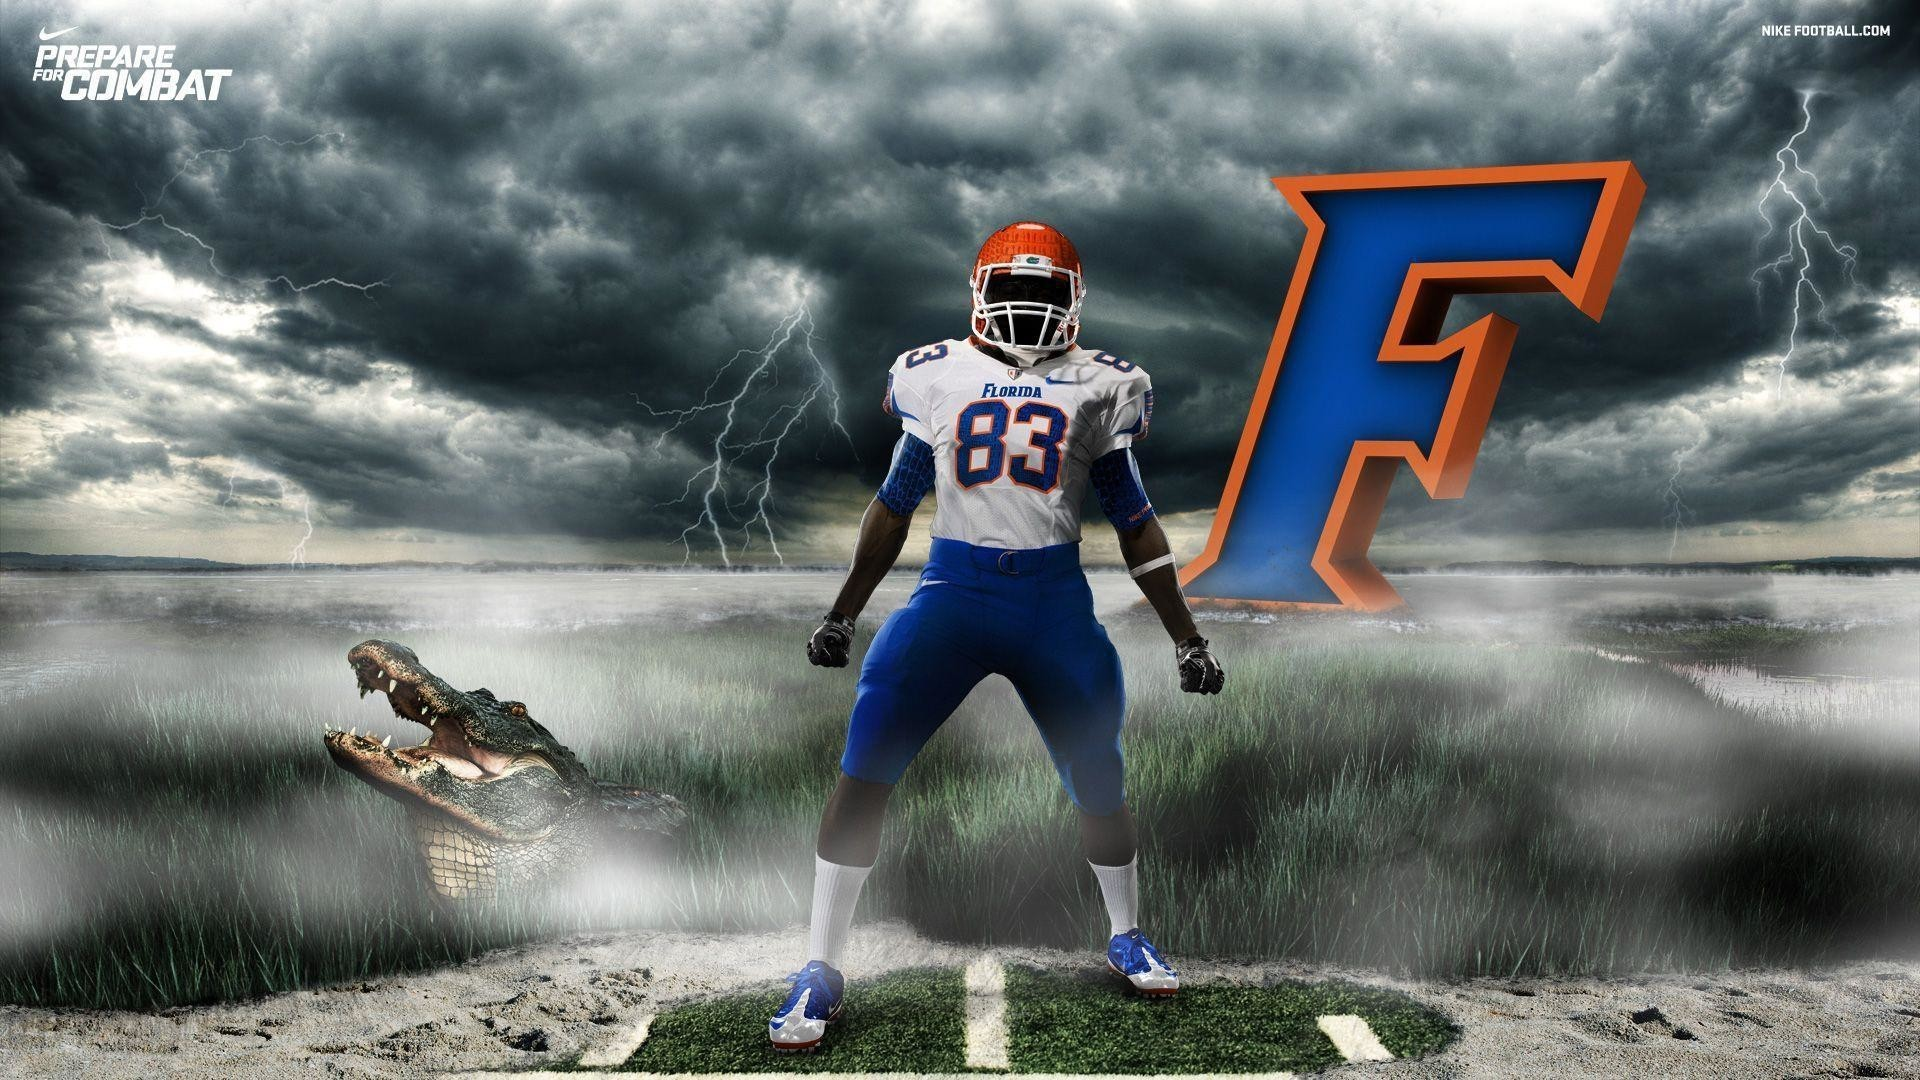 1920x1080  Free Download Amazing Florida Gators Football Images